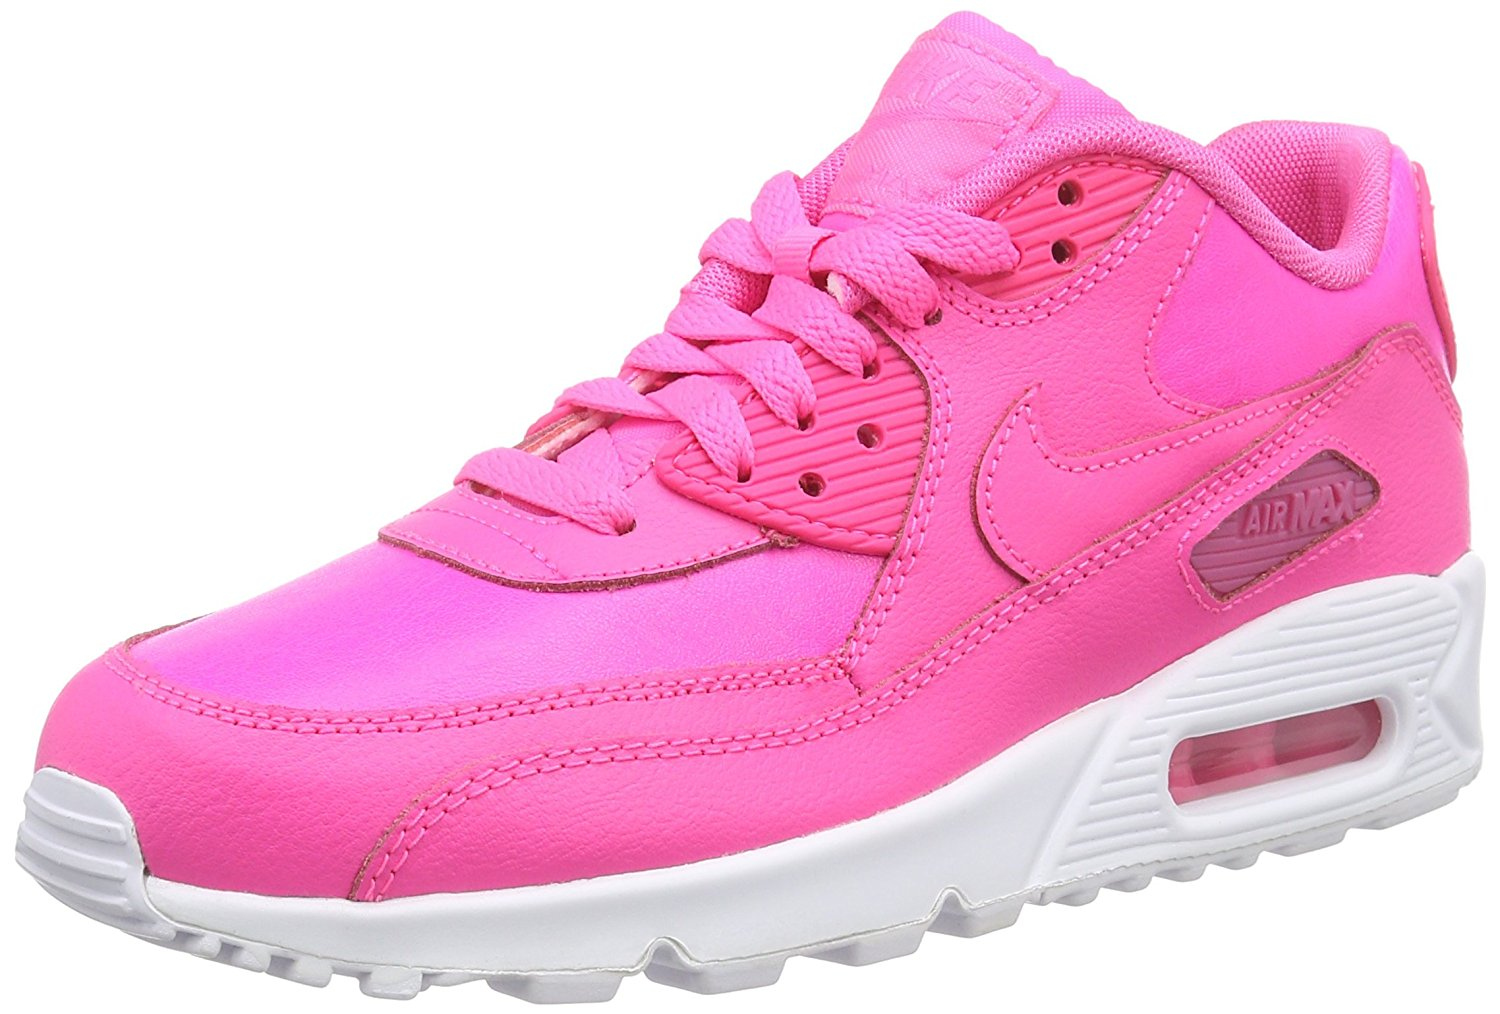 best service 35bdb c836a Get Quotations · Nike Air Max 90 LTR (GS) Running Shoes Sneakers 724852-600